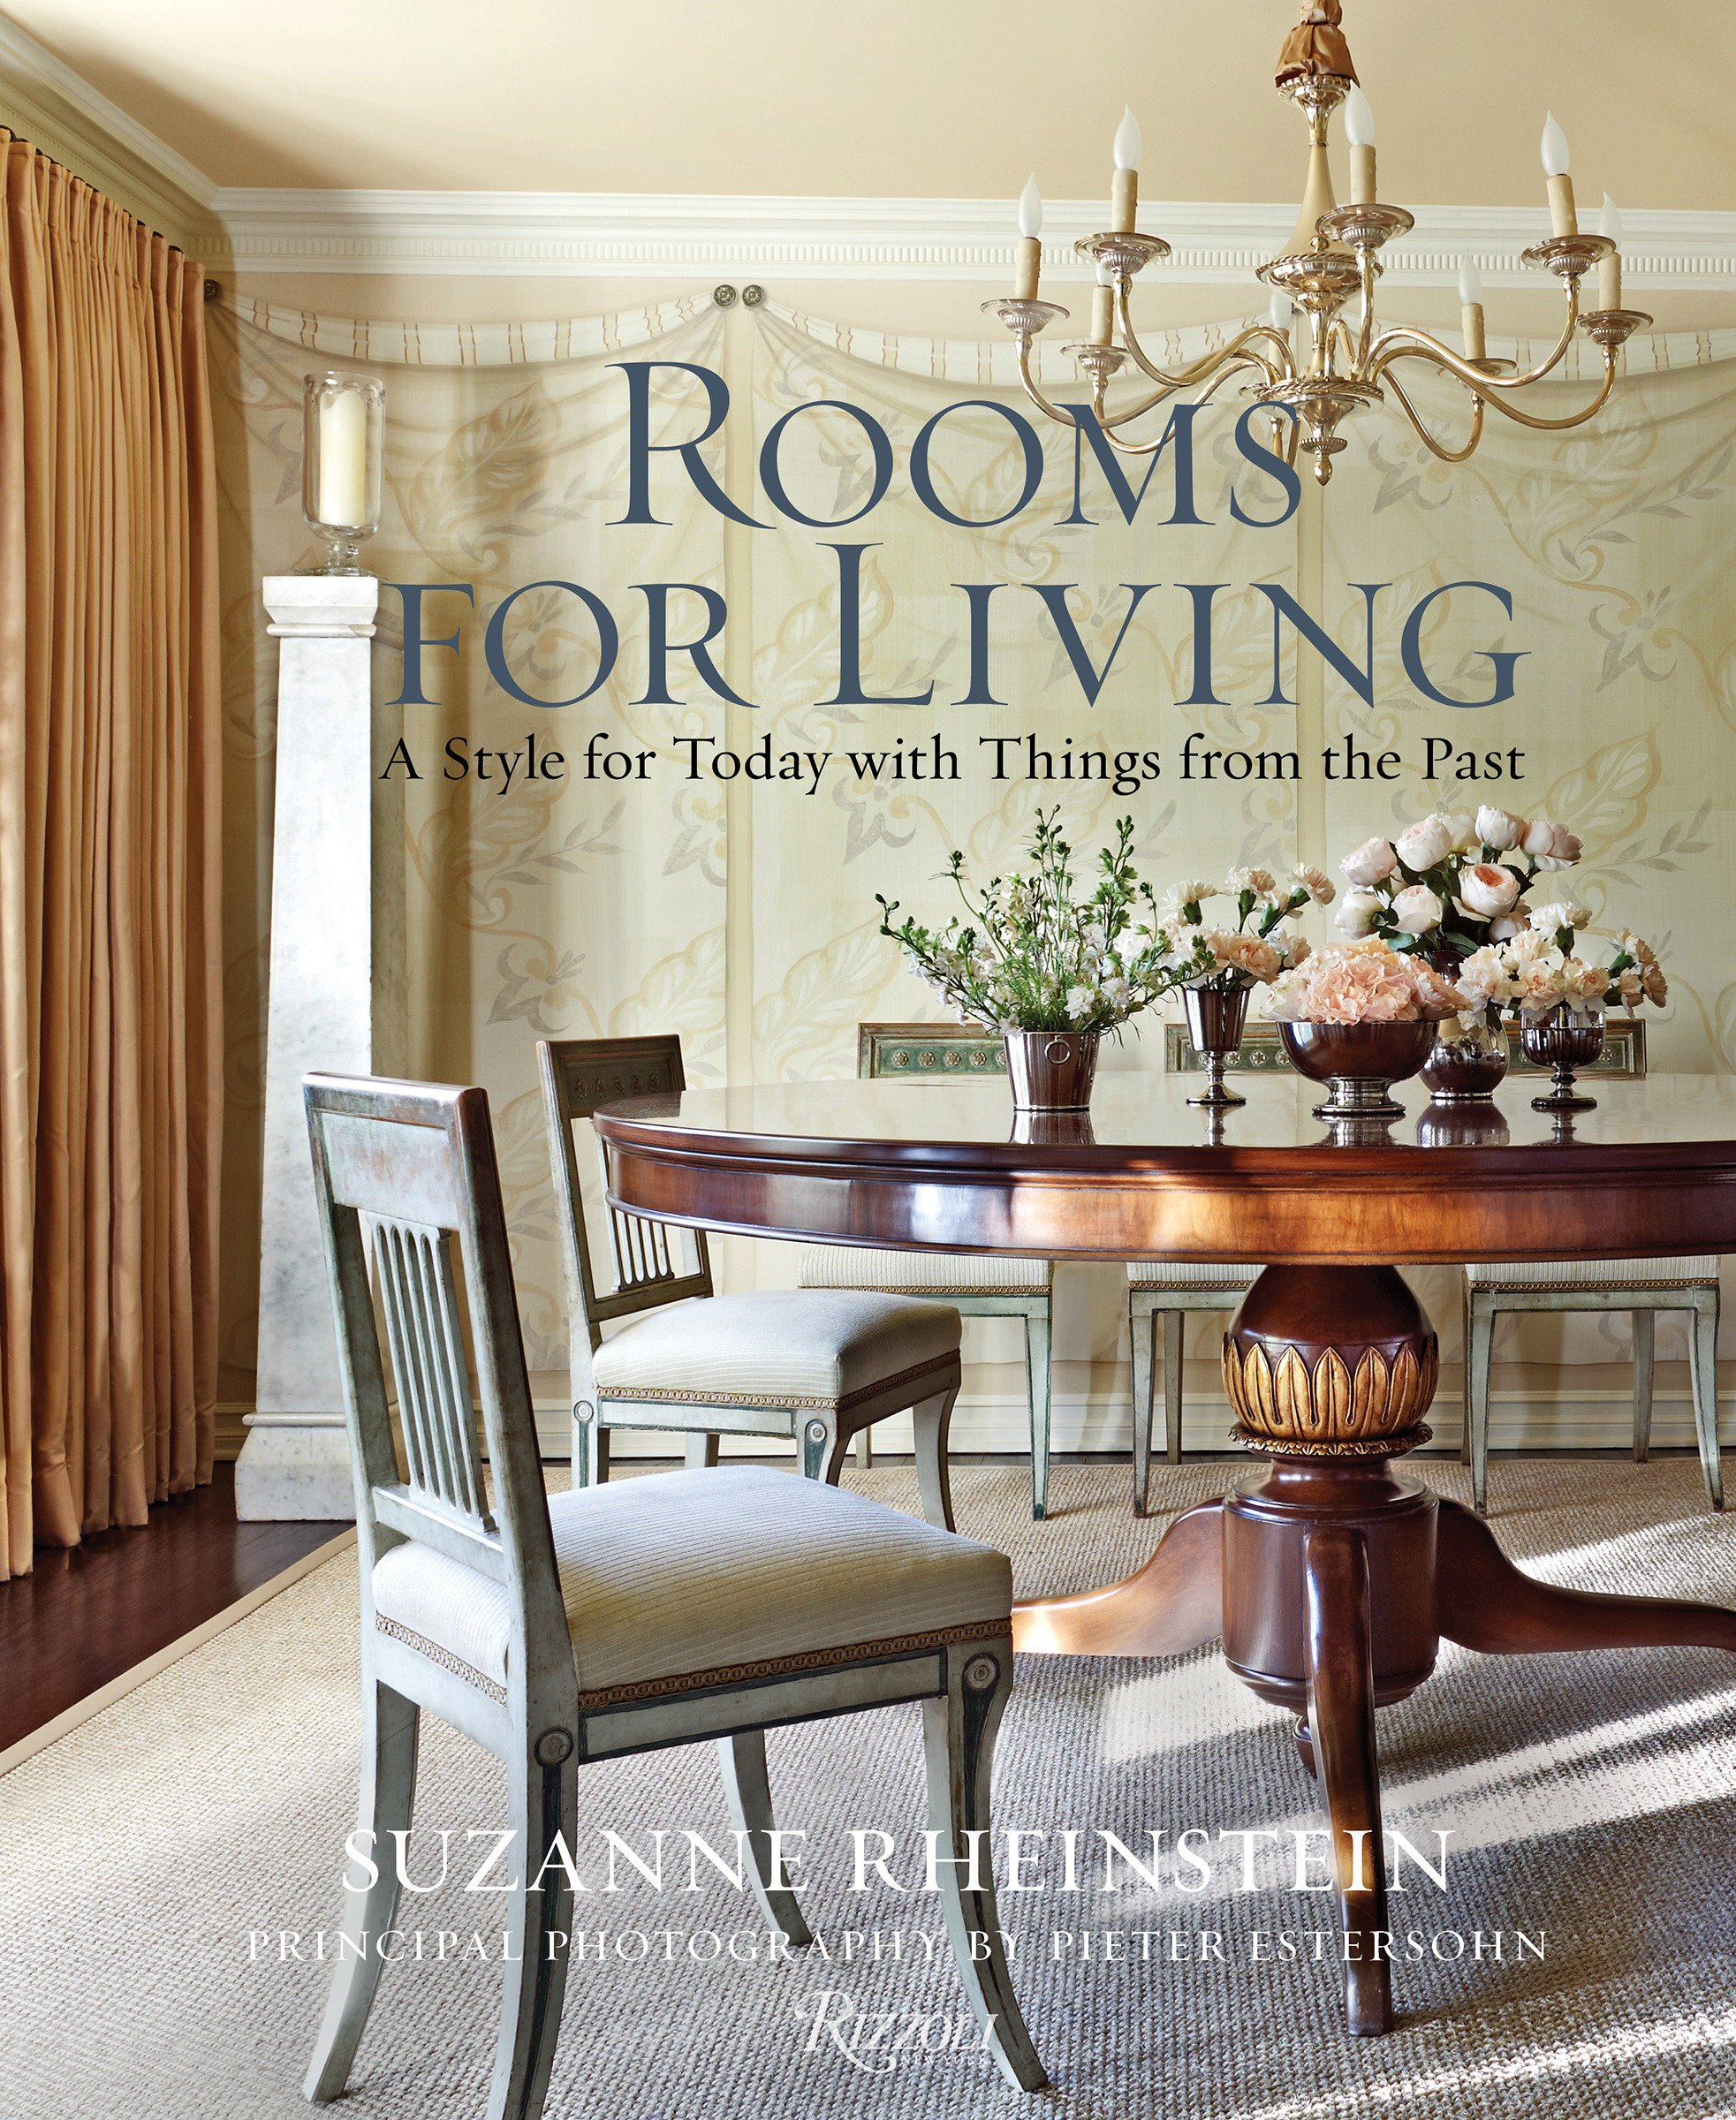 Rooms for Living A Style for Today